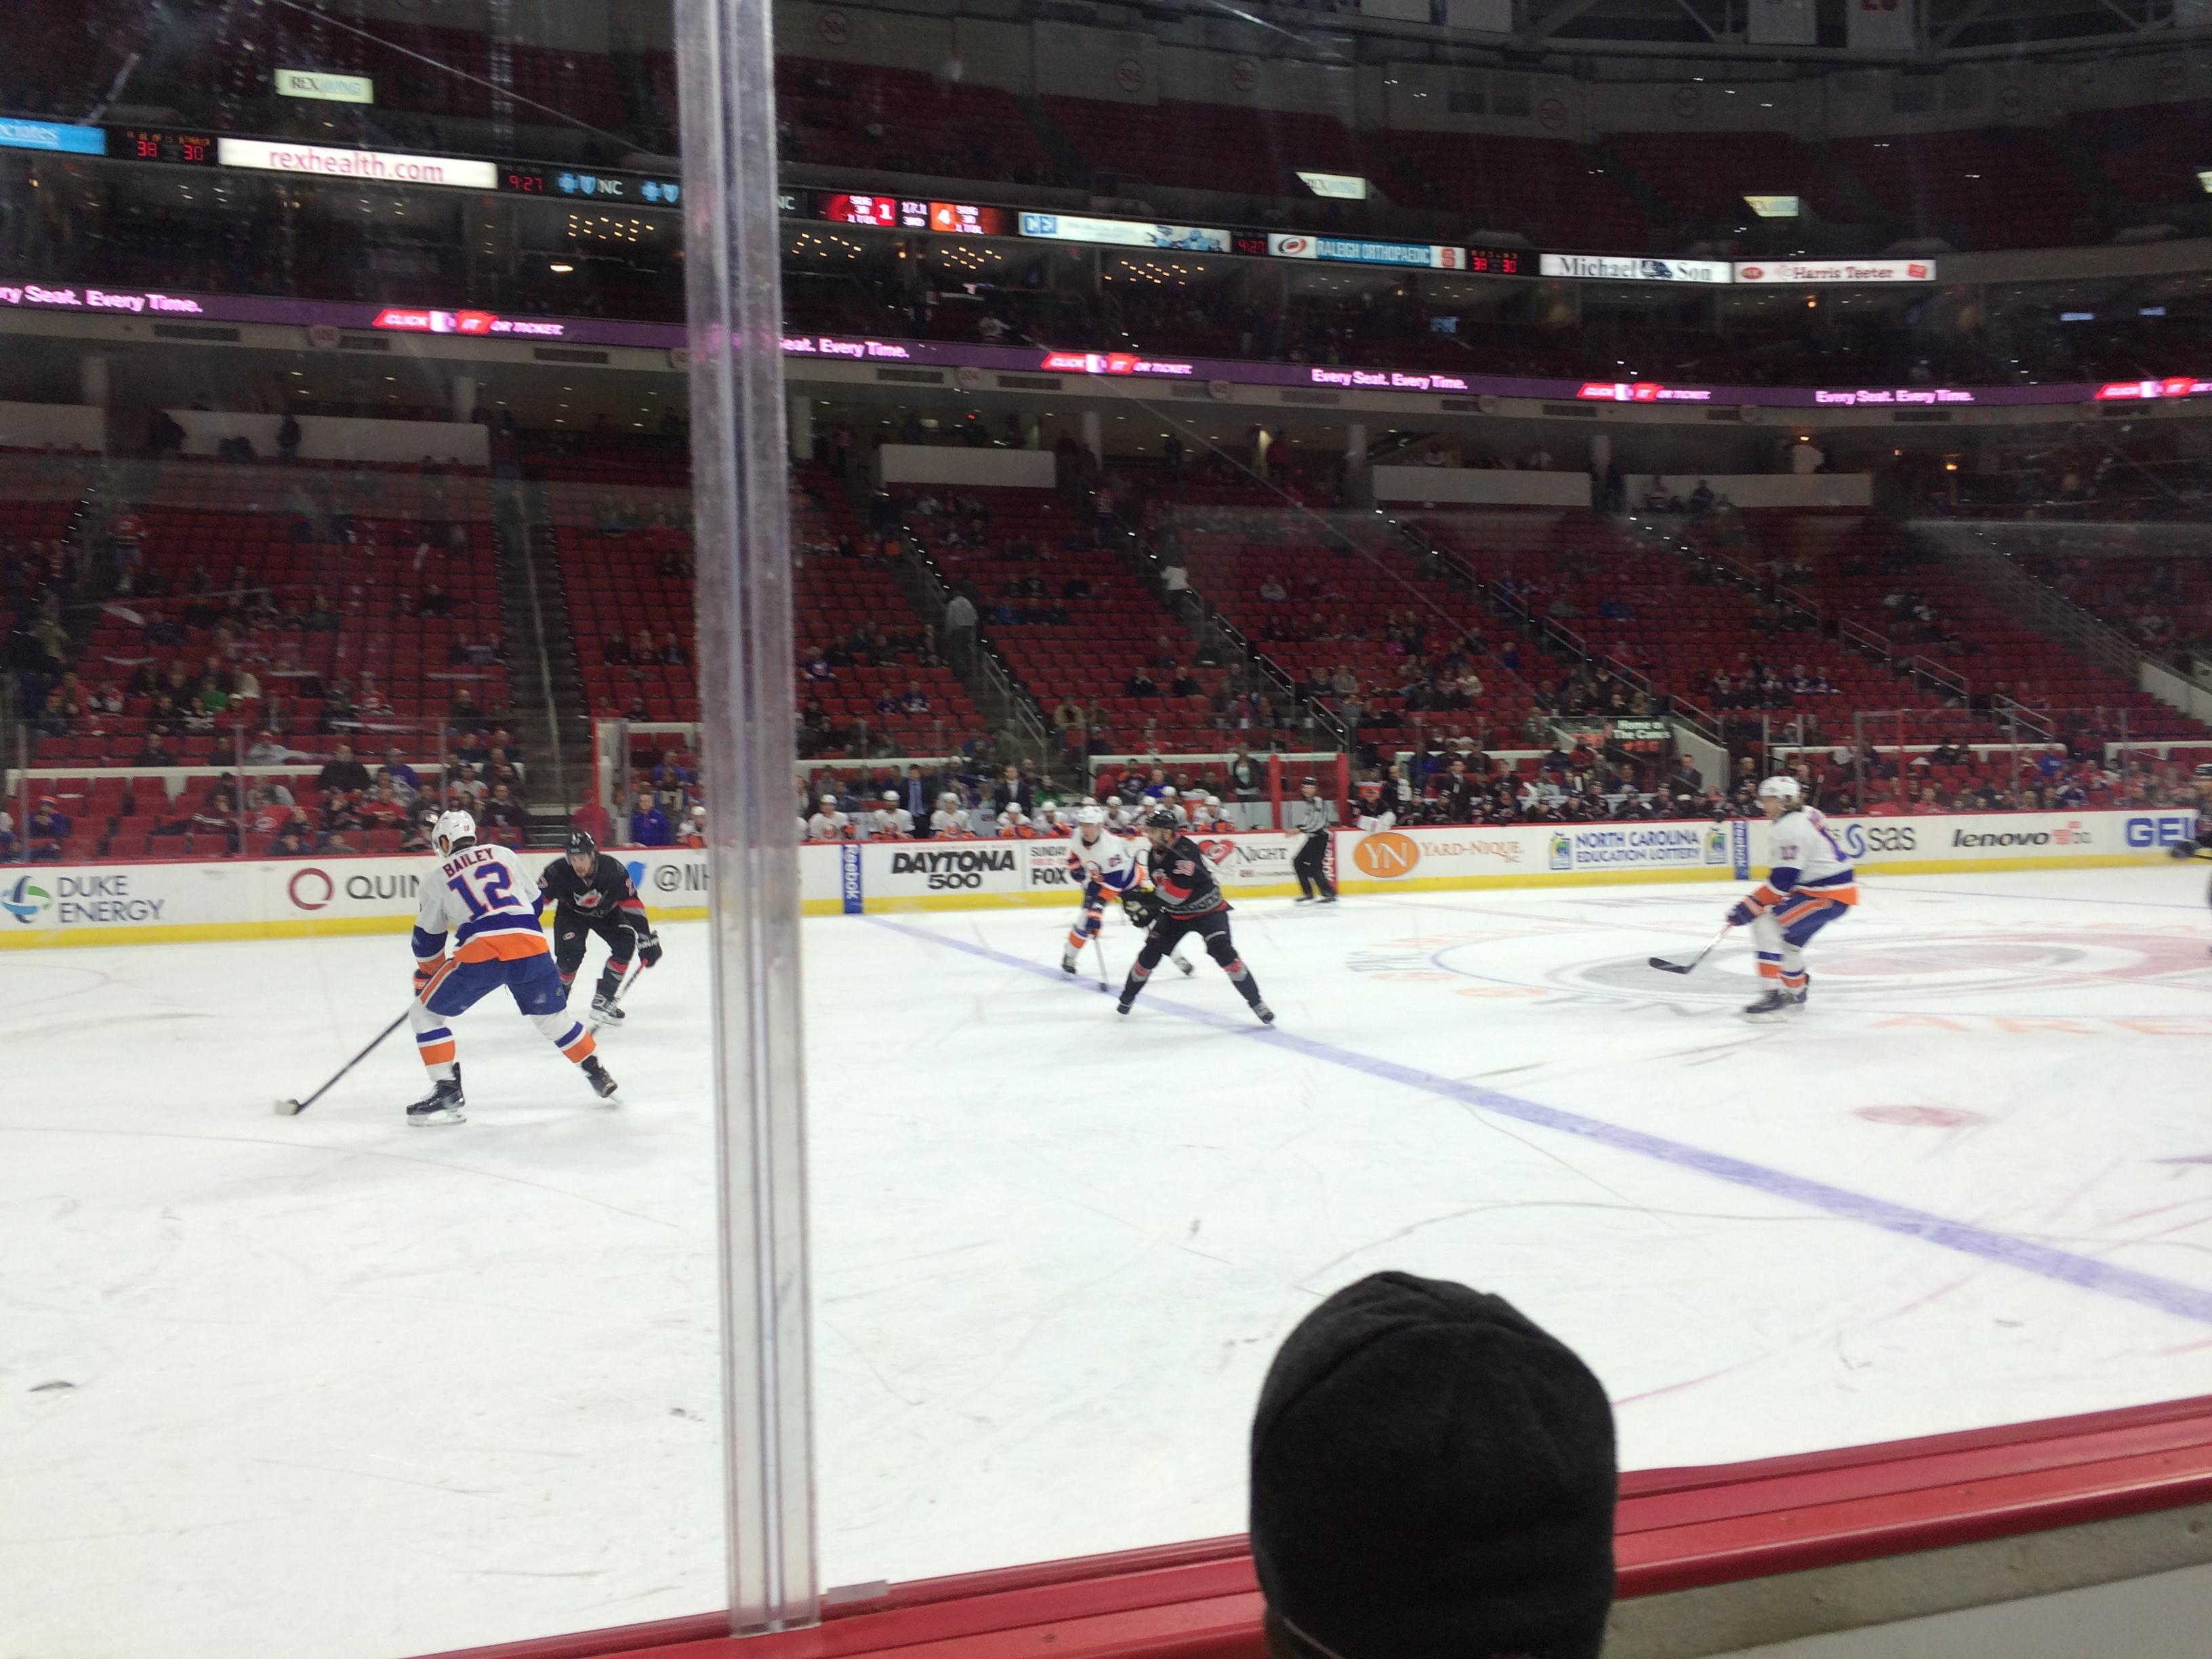 PNC Arena Section 121 Row B Seat 2